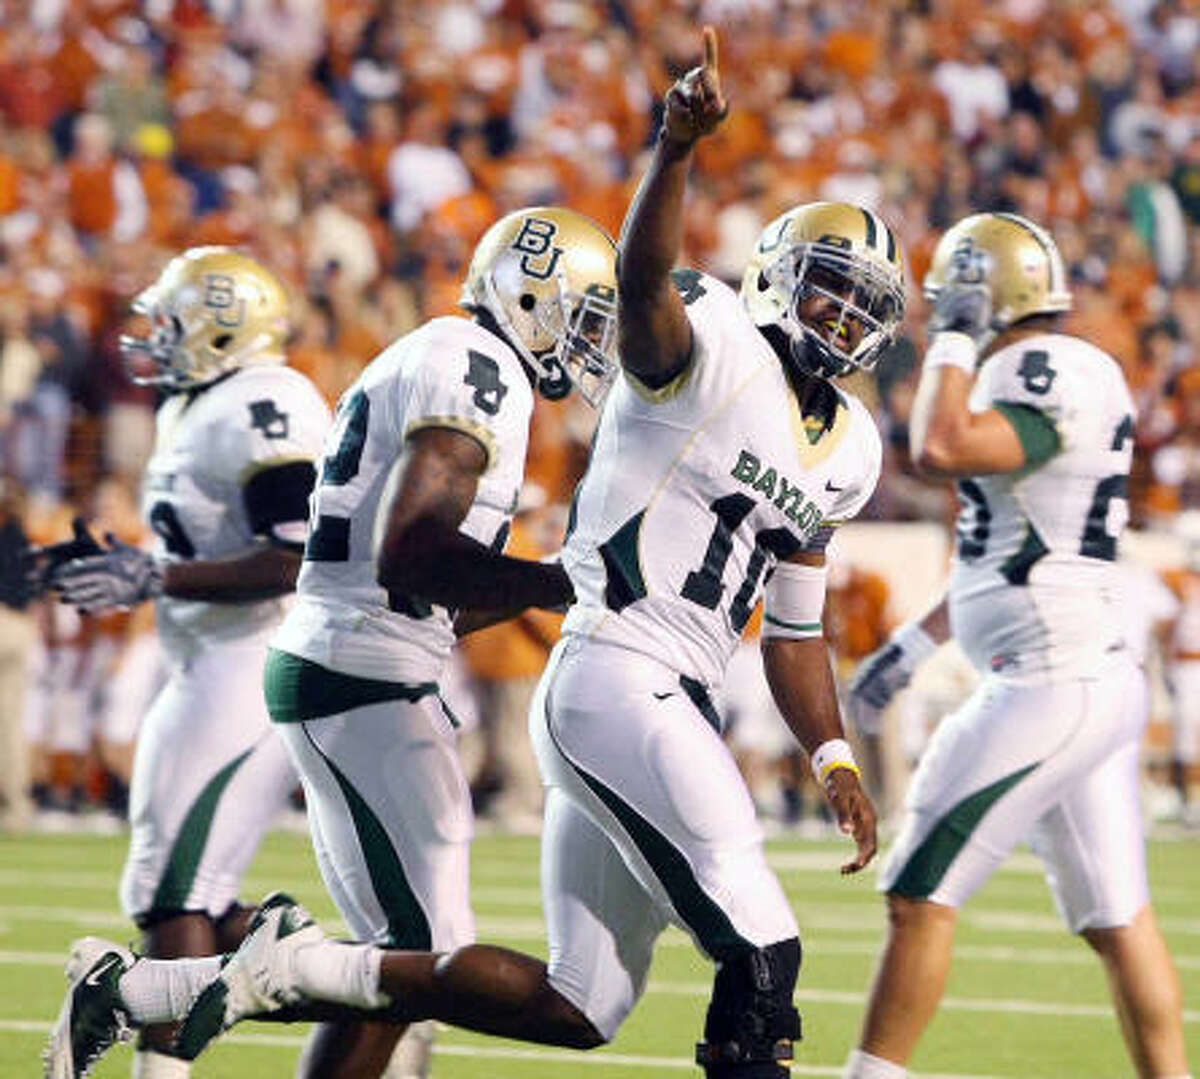 Baylor's win over Texas marked a high point in coach Art Briles' turnaround of the football program.